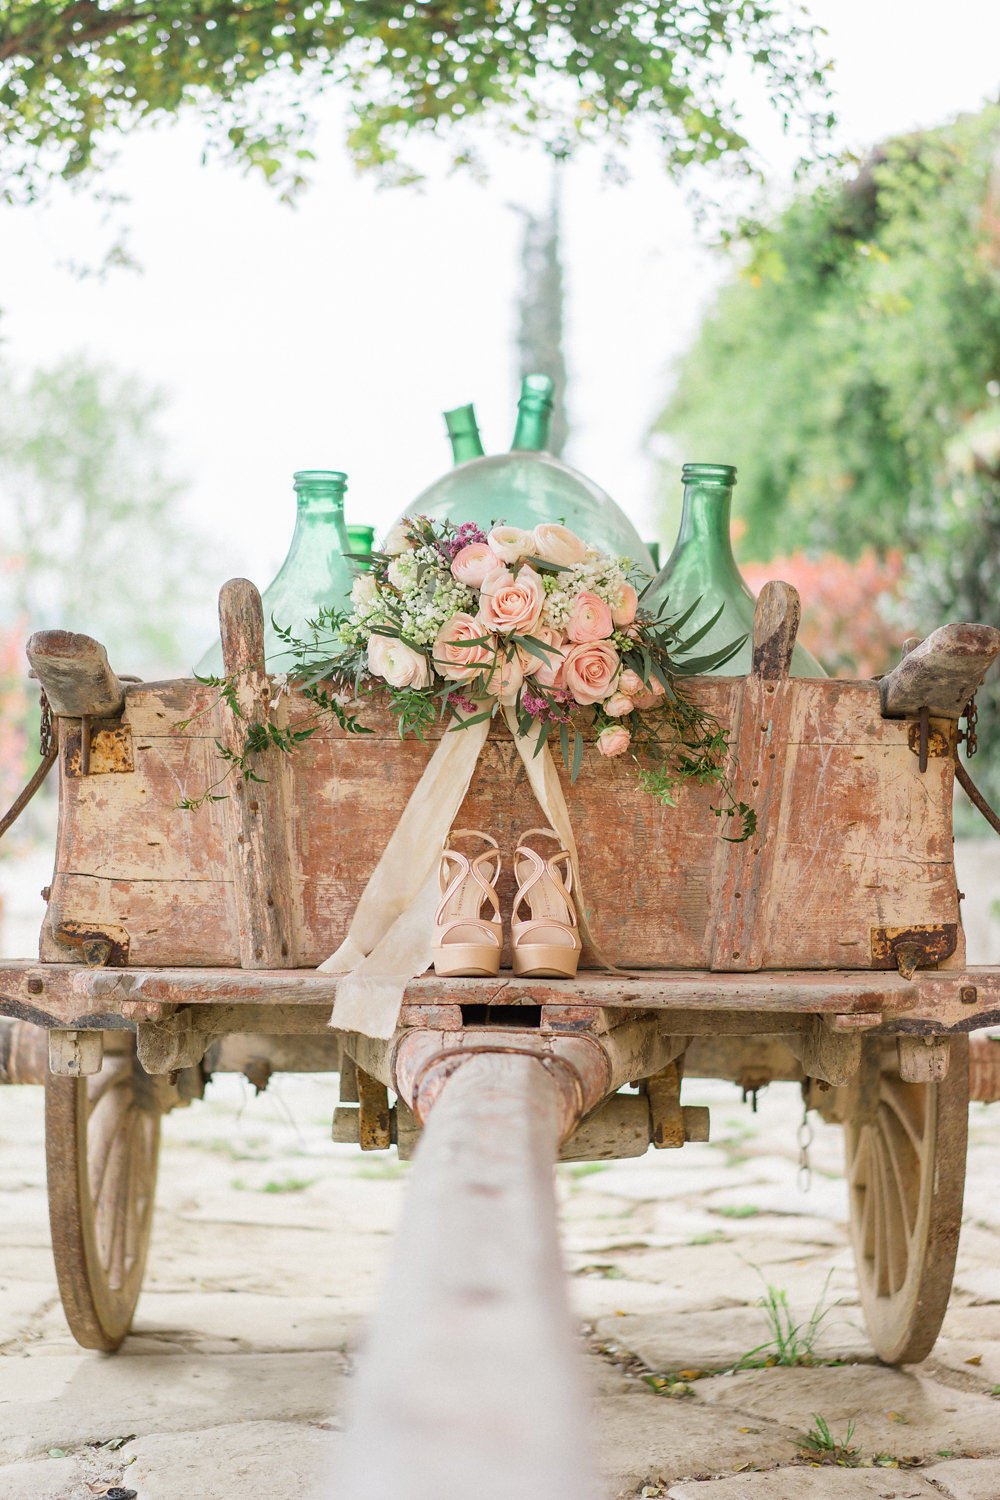 Tuscany Italy Wedding Photographer Roberta Facchini 212